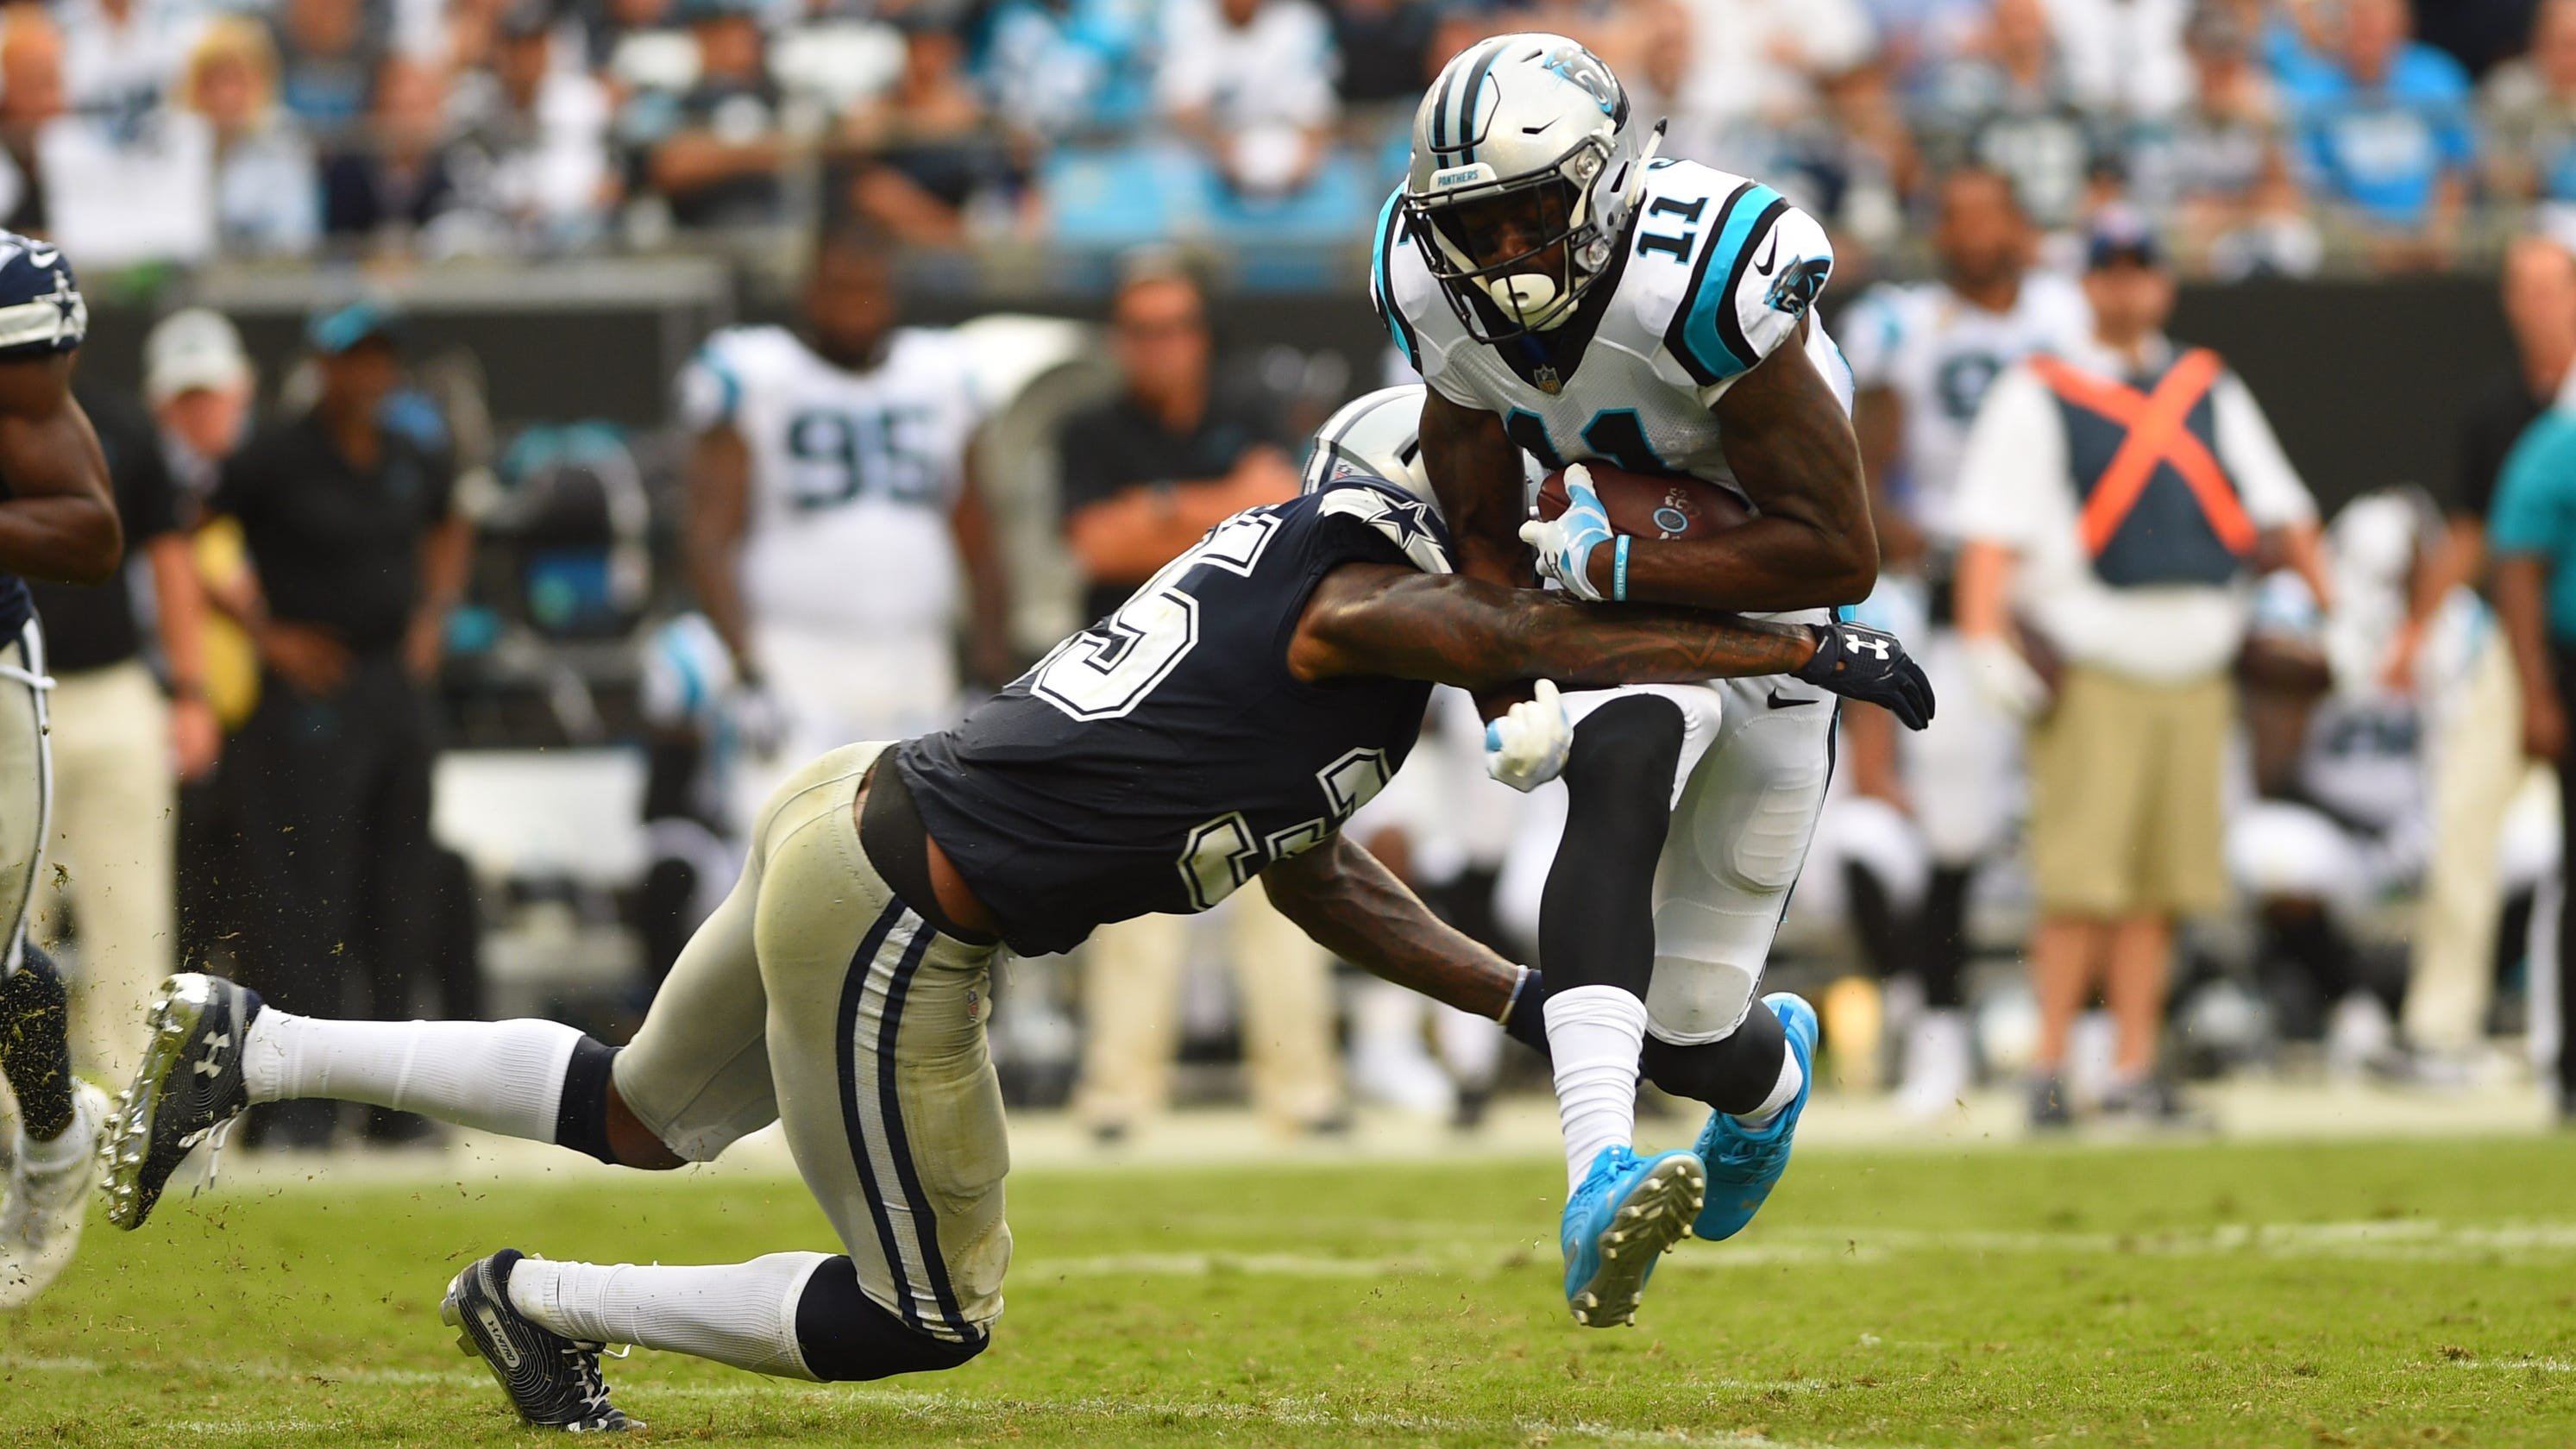 Usp Nfl Dallas Cowboys Carolina Panthers Crop Width Height Fit Bounds Cbs Fox Ratings Gains Week